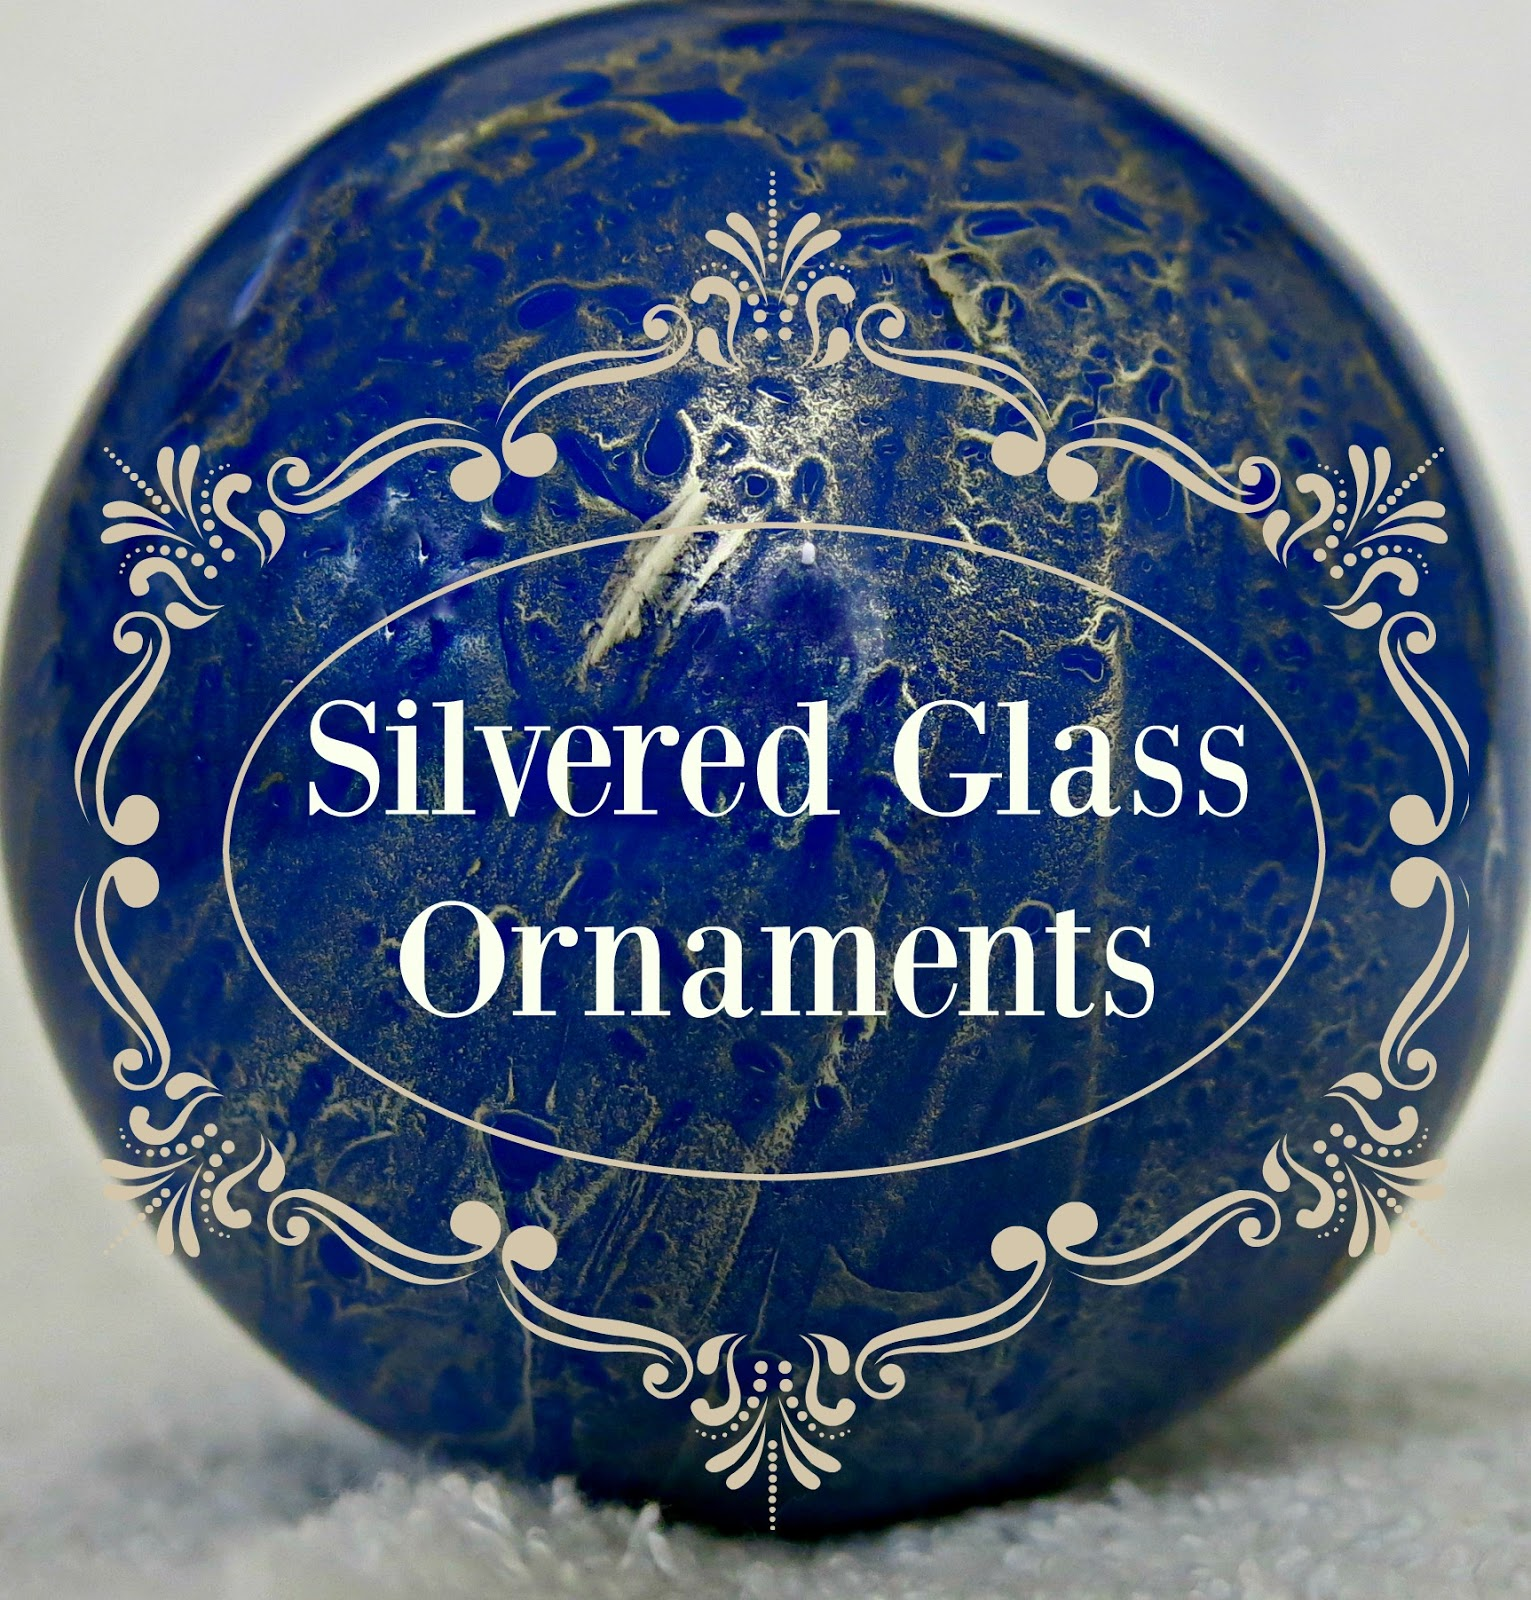 Beautiful glass ornaments - Behold A Beautiful Glass Ornament With Delicate Marbled Threads Of Silver Is It A Precious And Costly Adornment That Can Be Found Only In The Finest